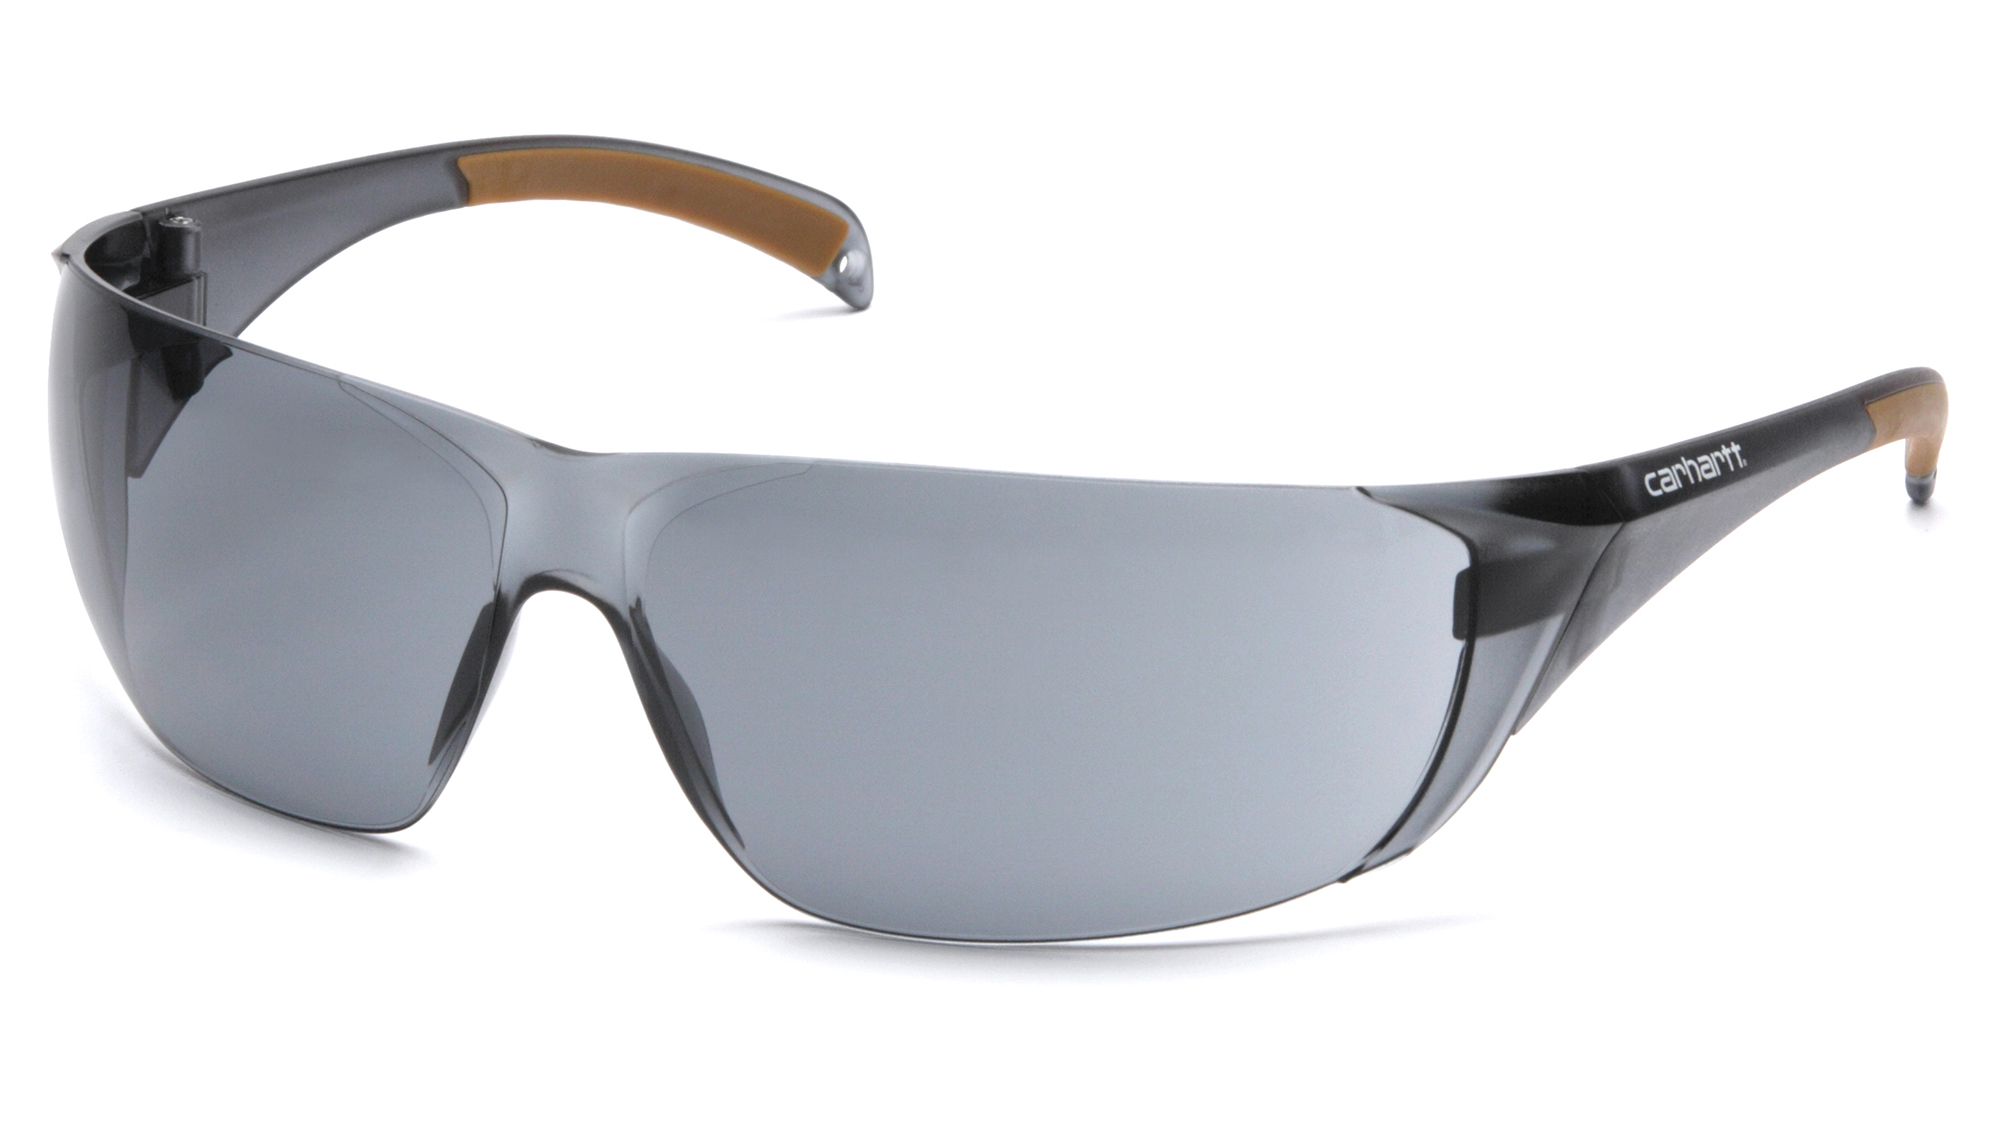 Carhartt Billings Gray Lens Safety Glasses -